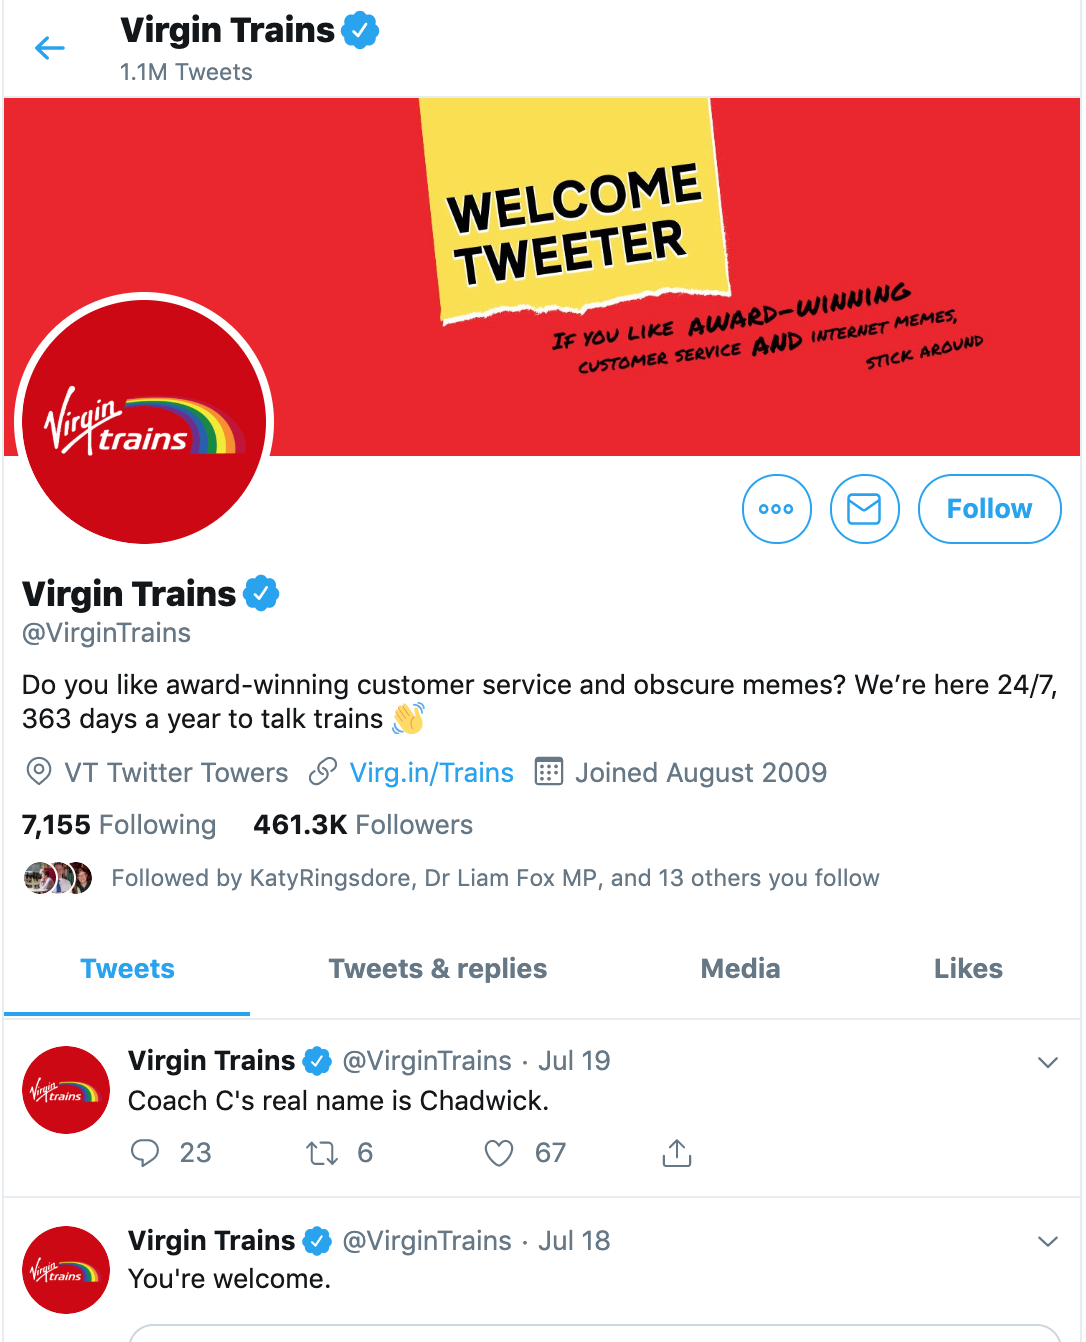 Click here to view the virgin trains twitter!